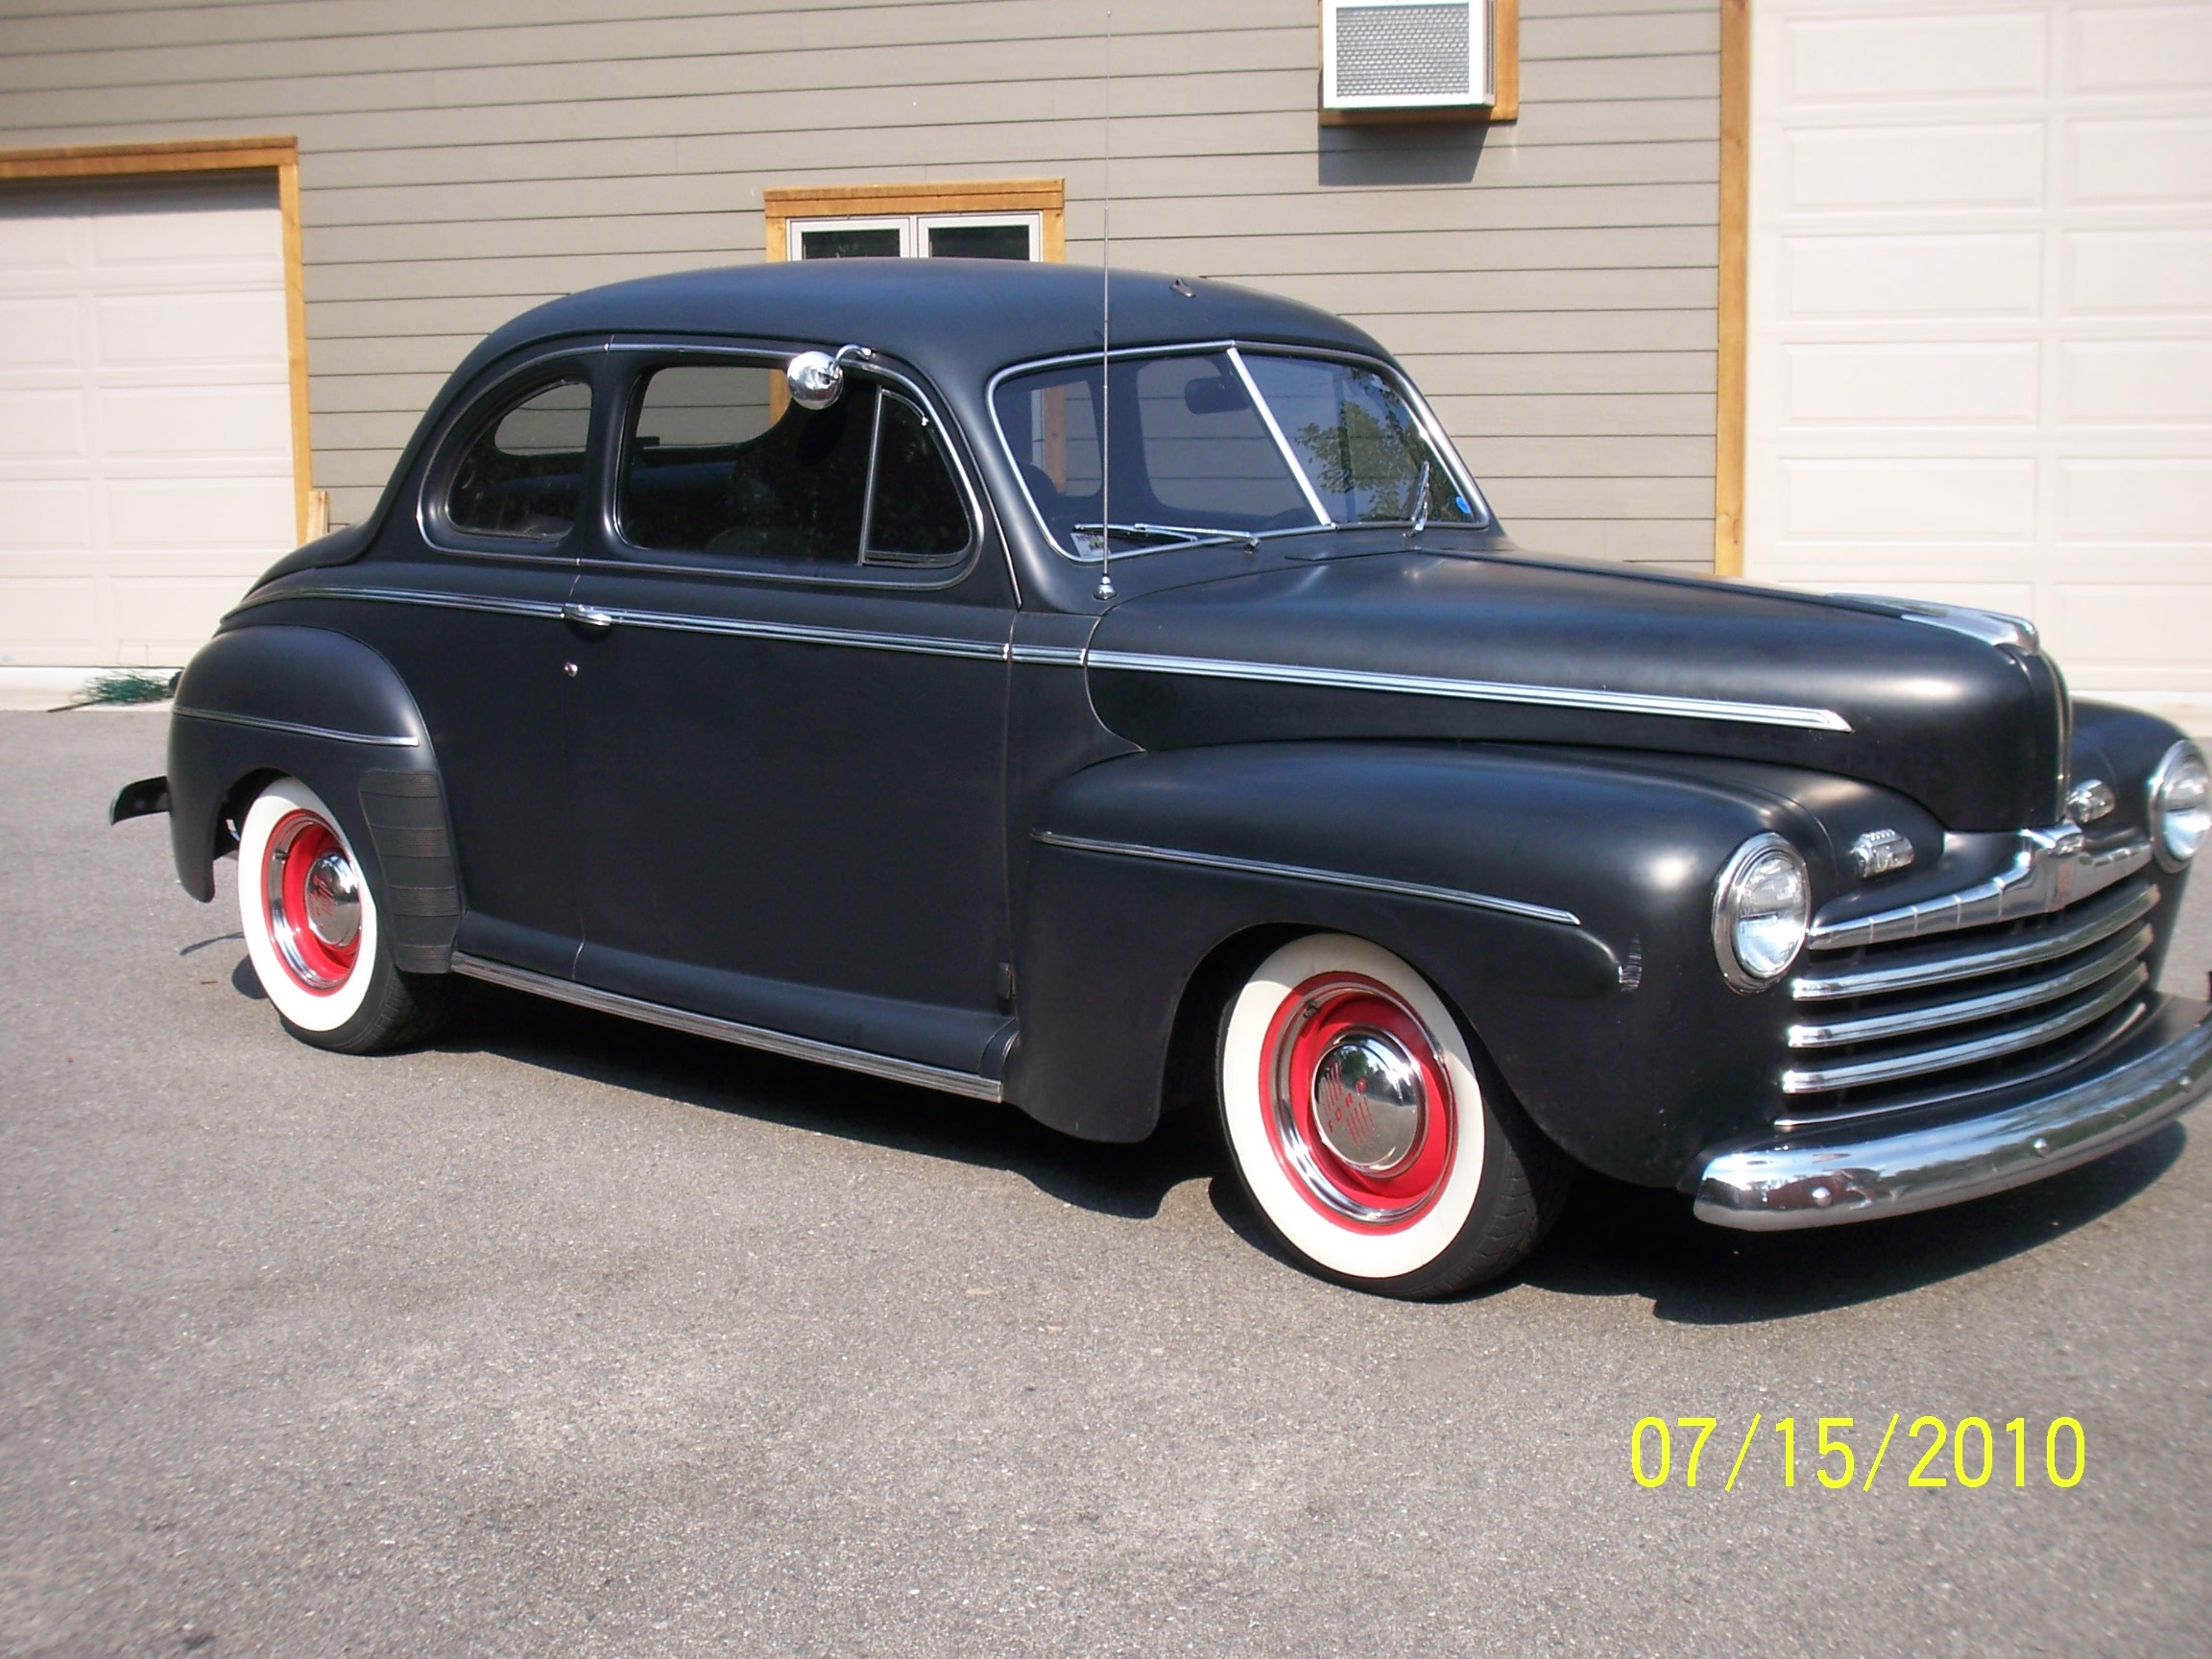 Click image for larger version  Name:46Ford.JPG Views:251 Size:1.77 MB ID:57387